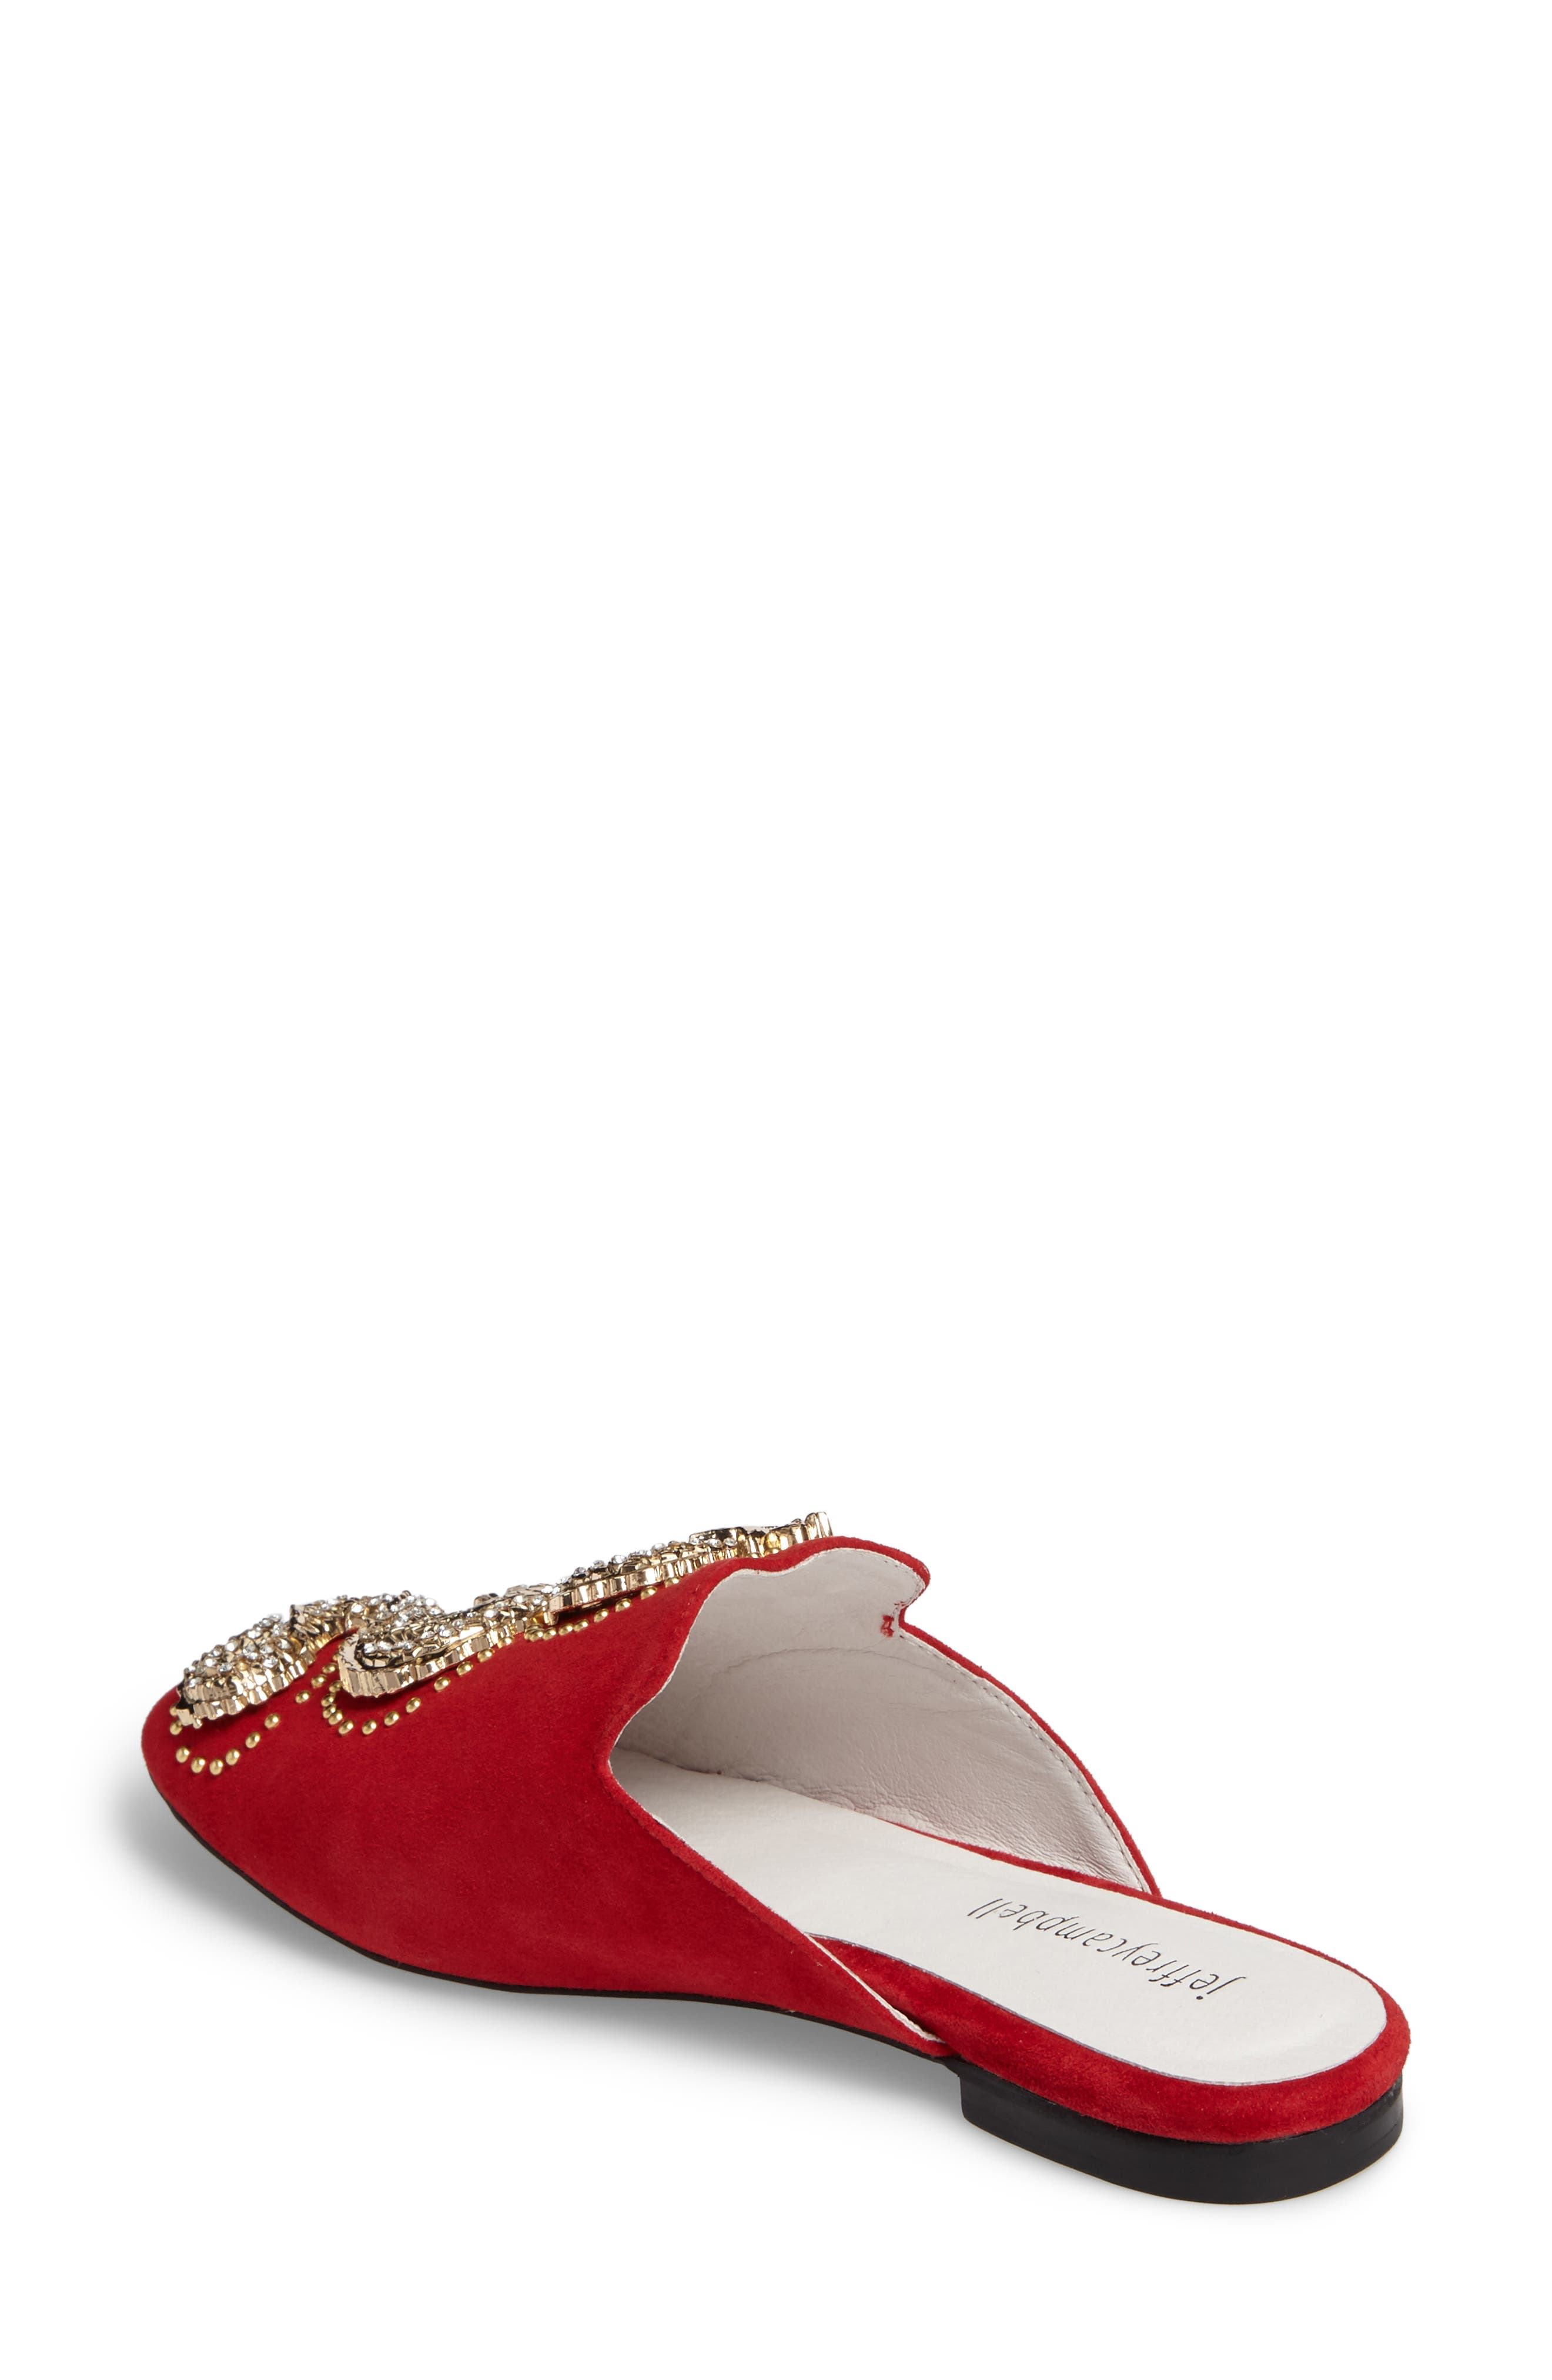 Ravis-Drag Loafer Mule,                             Alternate thumbnail 2, color,                             600